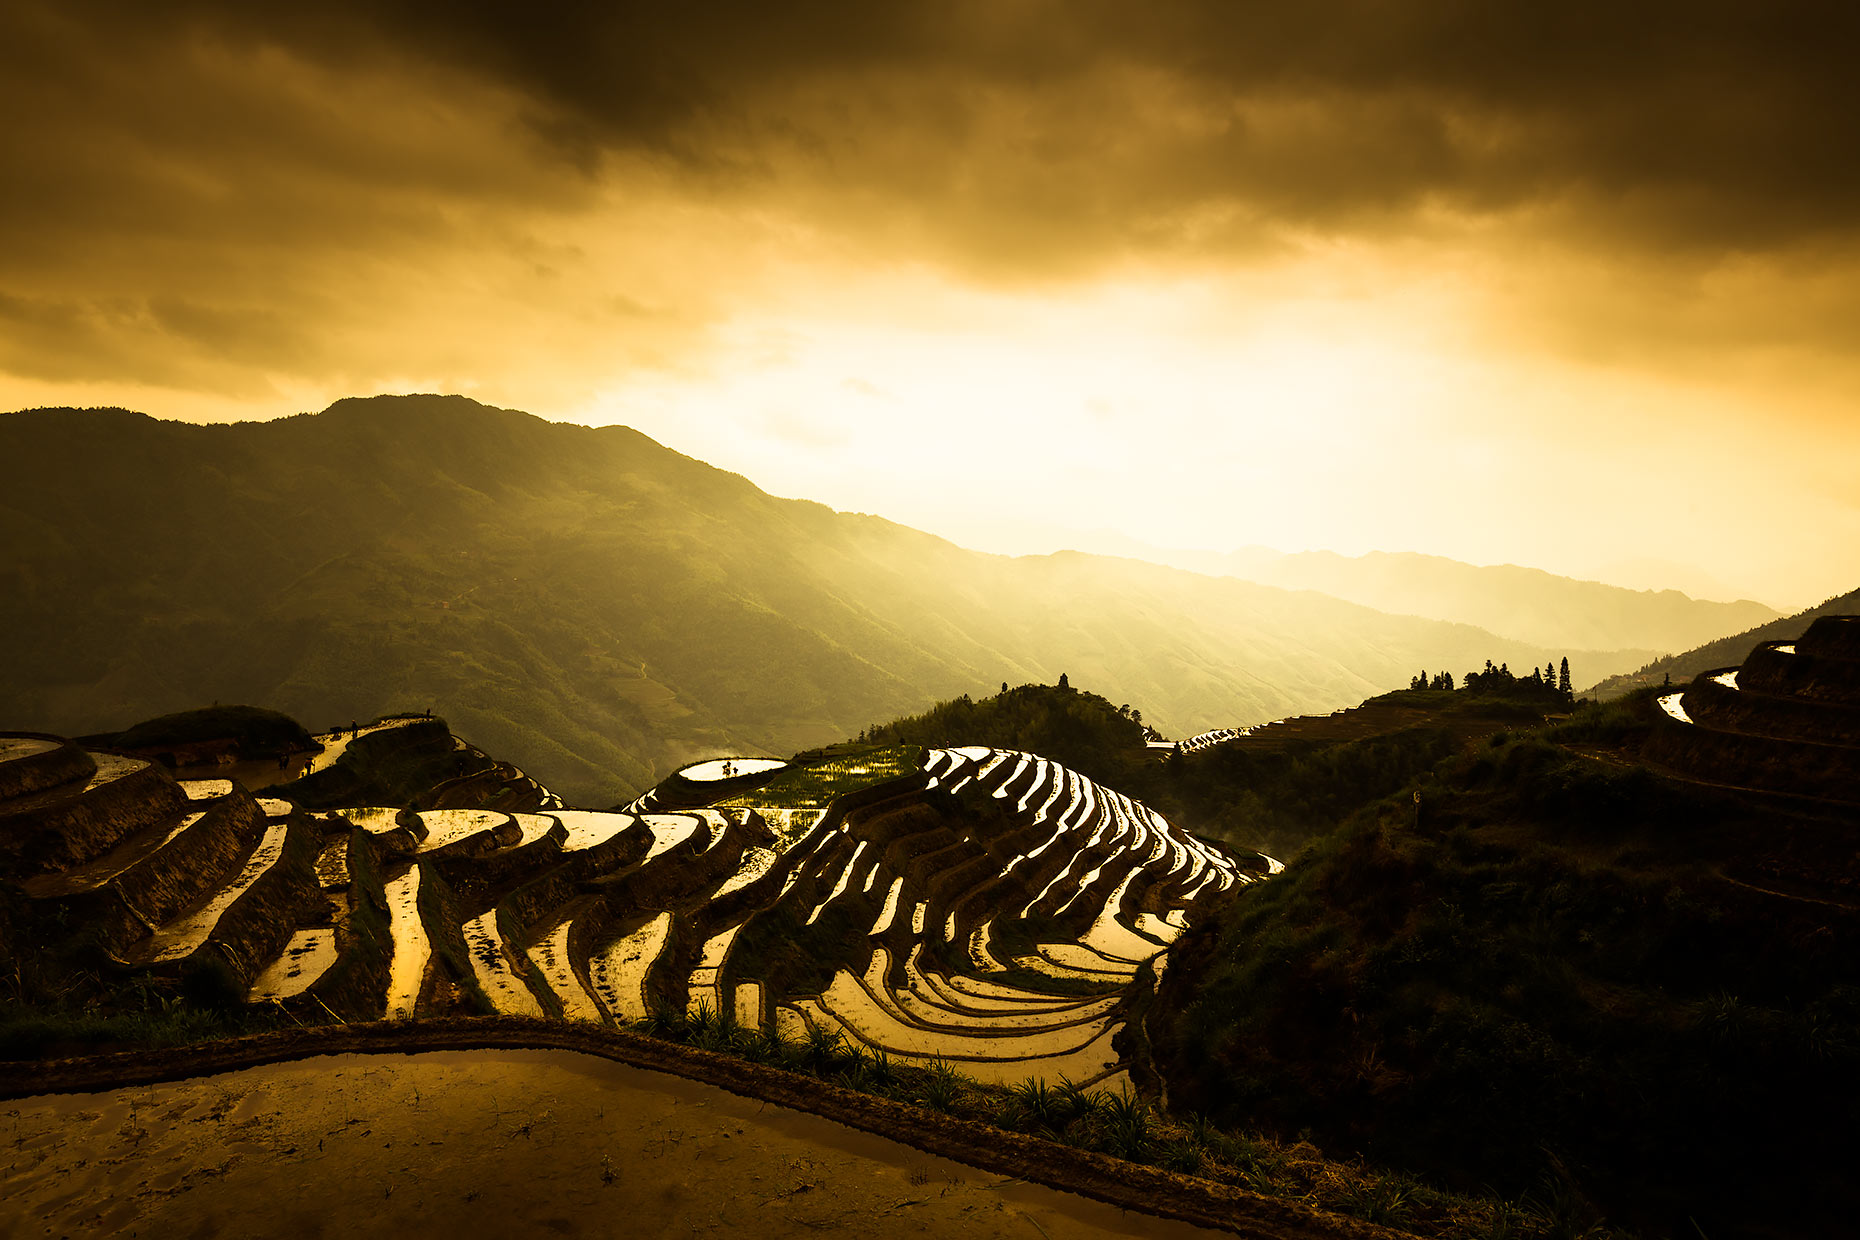 rice terraces southern china | Scott Gable is an advertising and editorial photographer providing photography and video to corporate, industrial, medical and bio-science clients worldwide.